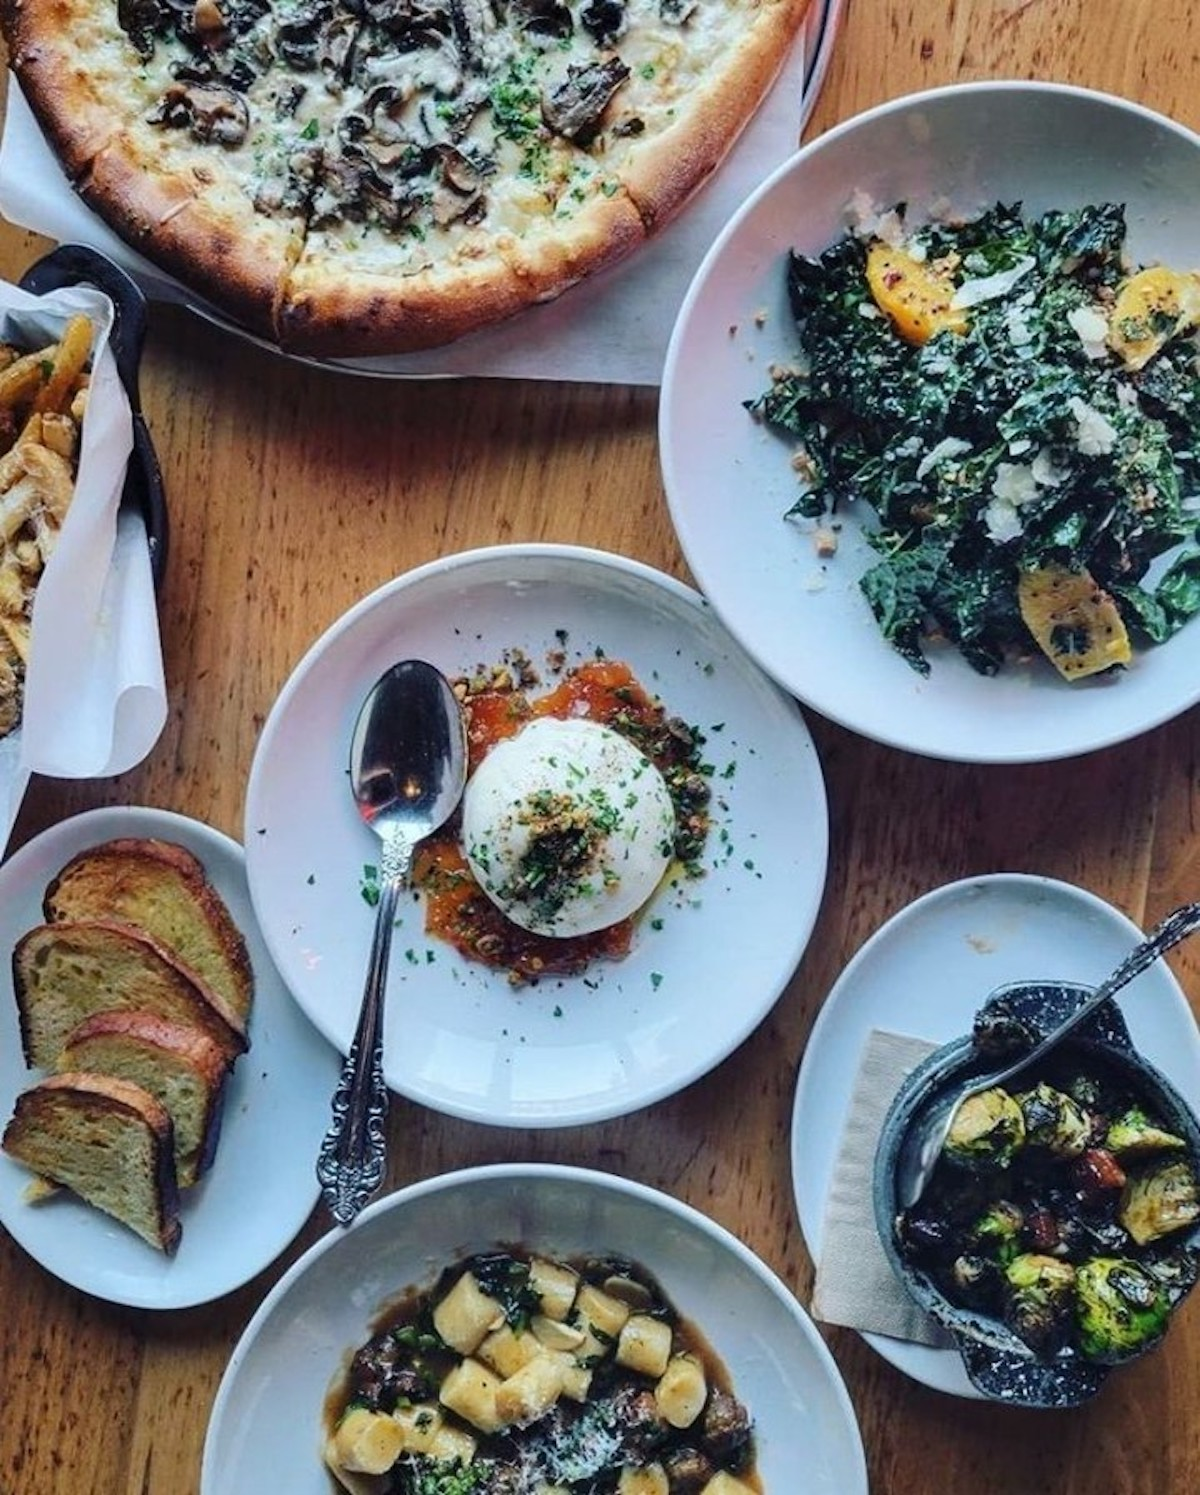 Bar Siena to Open an Outpost in Skokie's Old Orchard